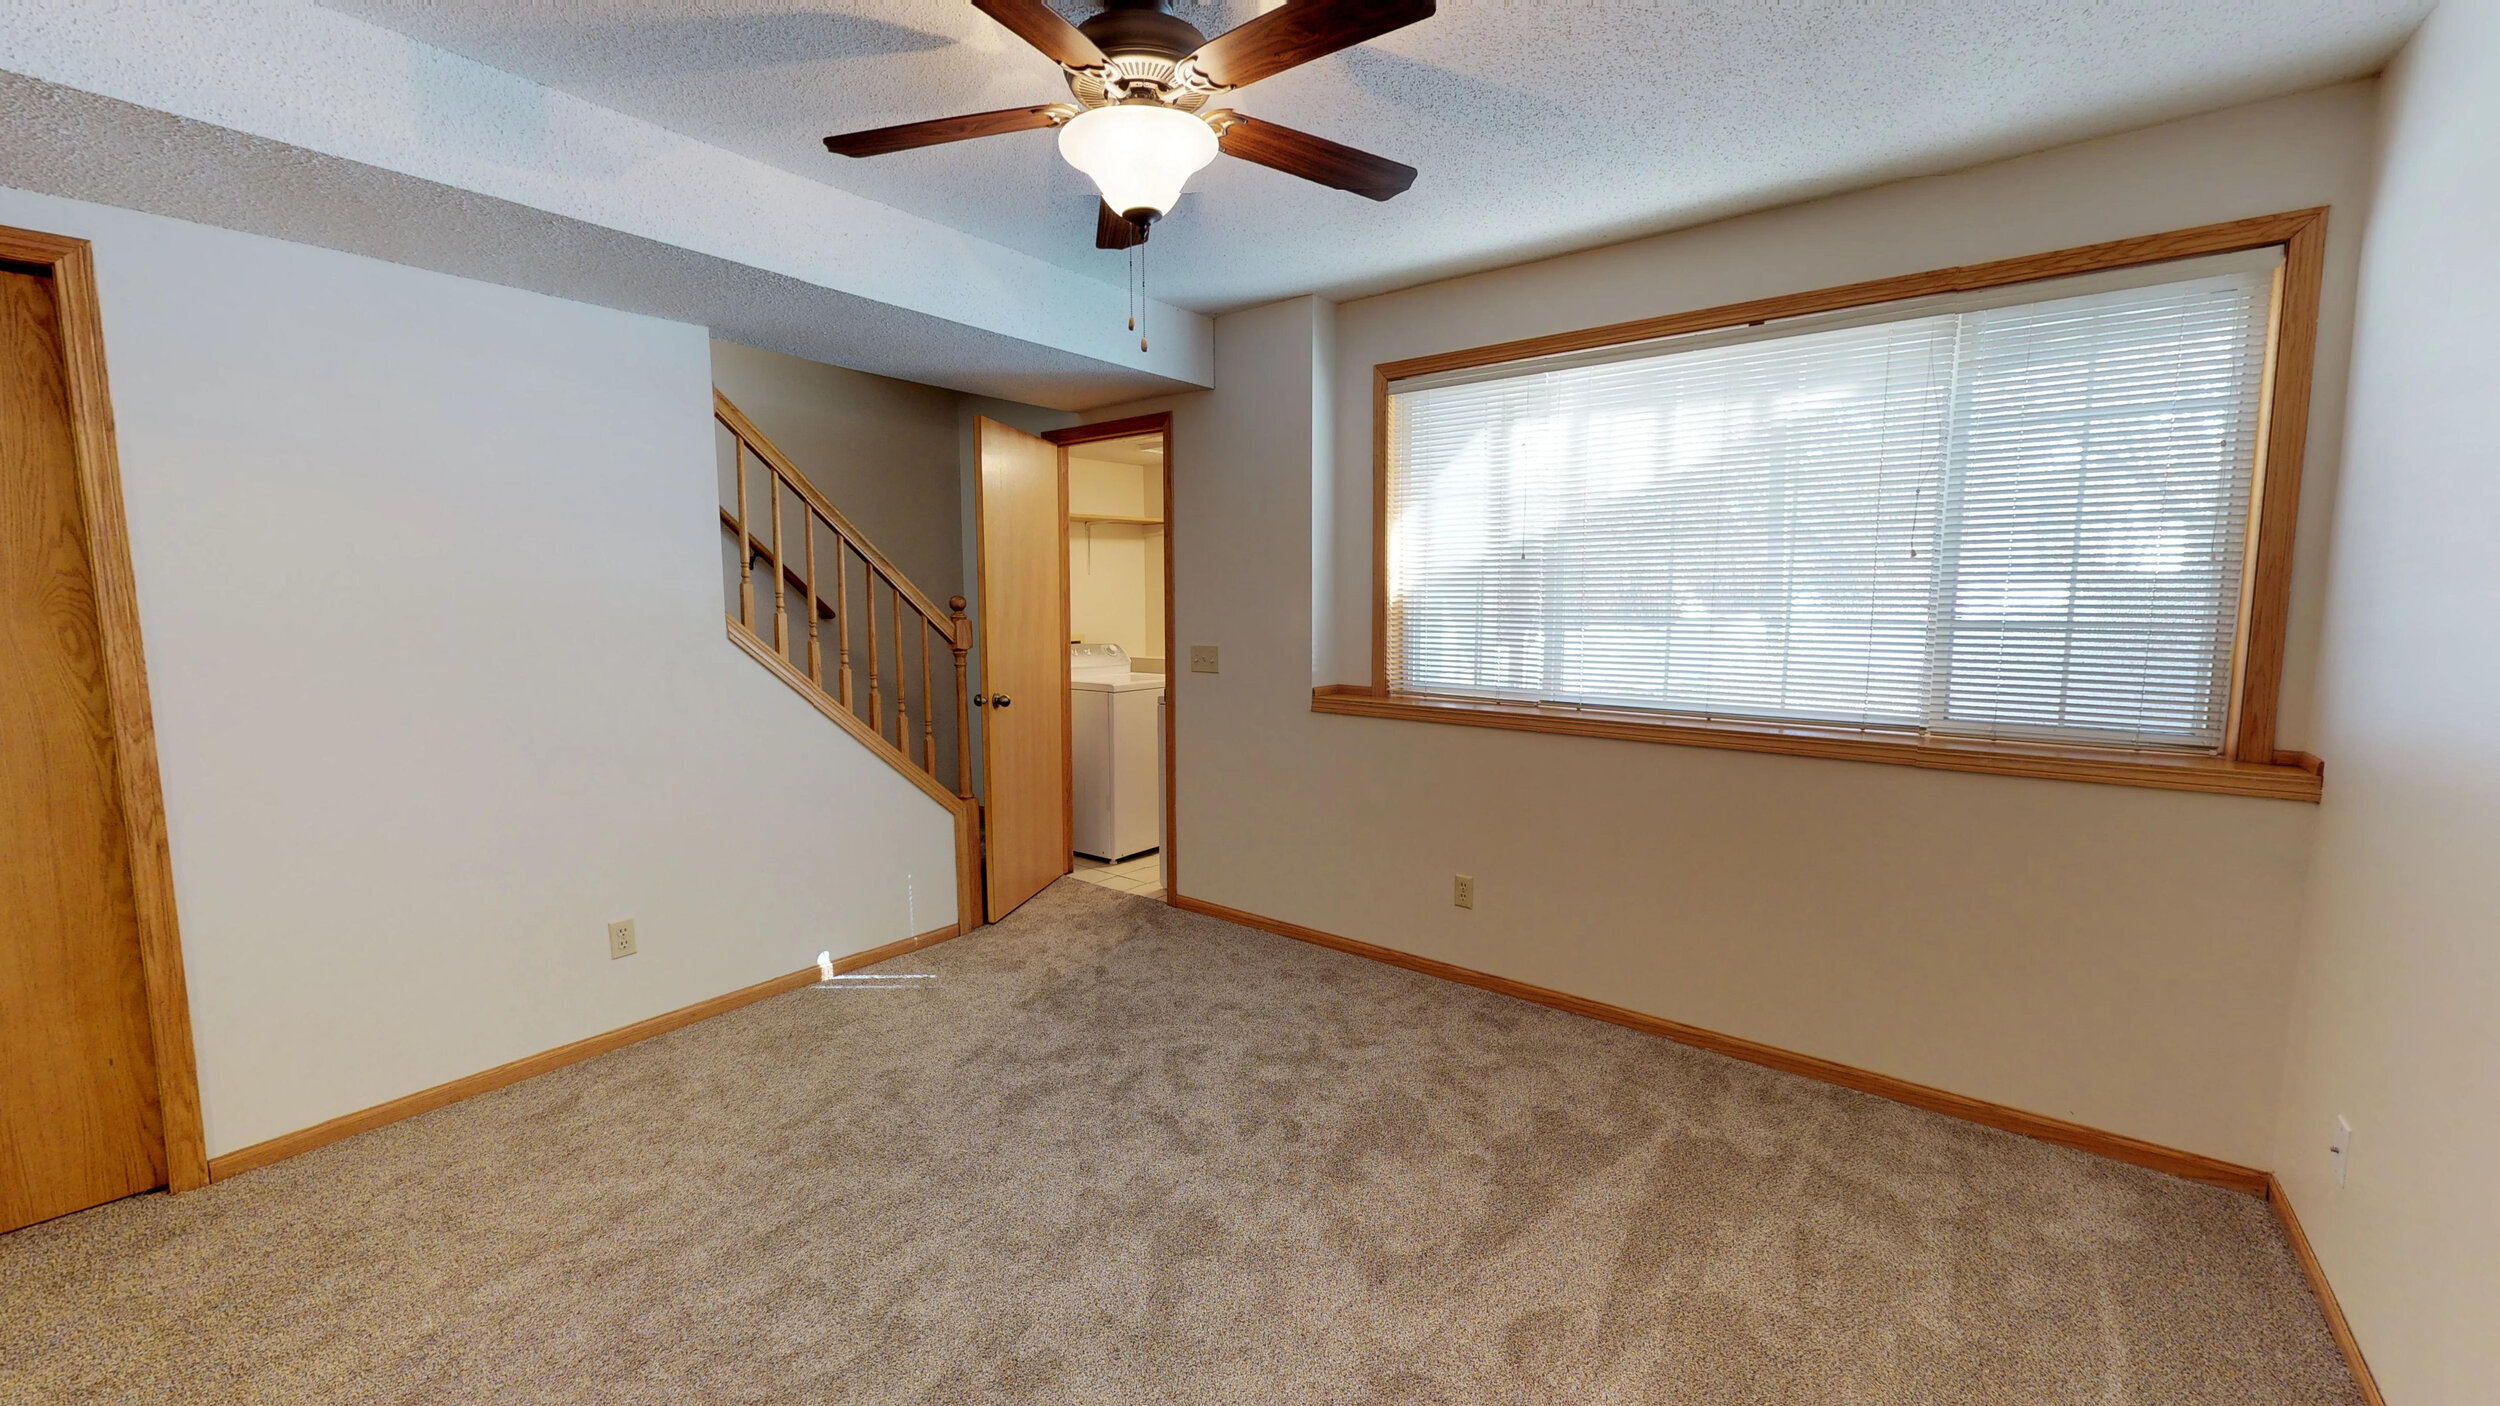 Large Basement Family Room with Separate Washer & Dryer Area